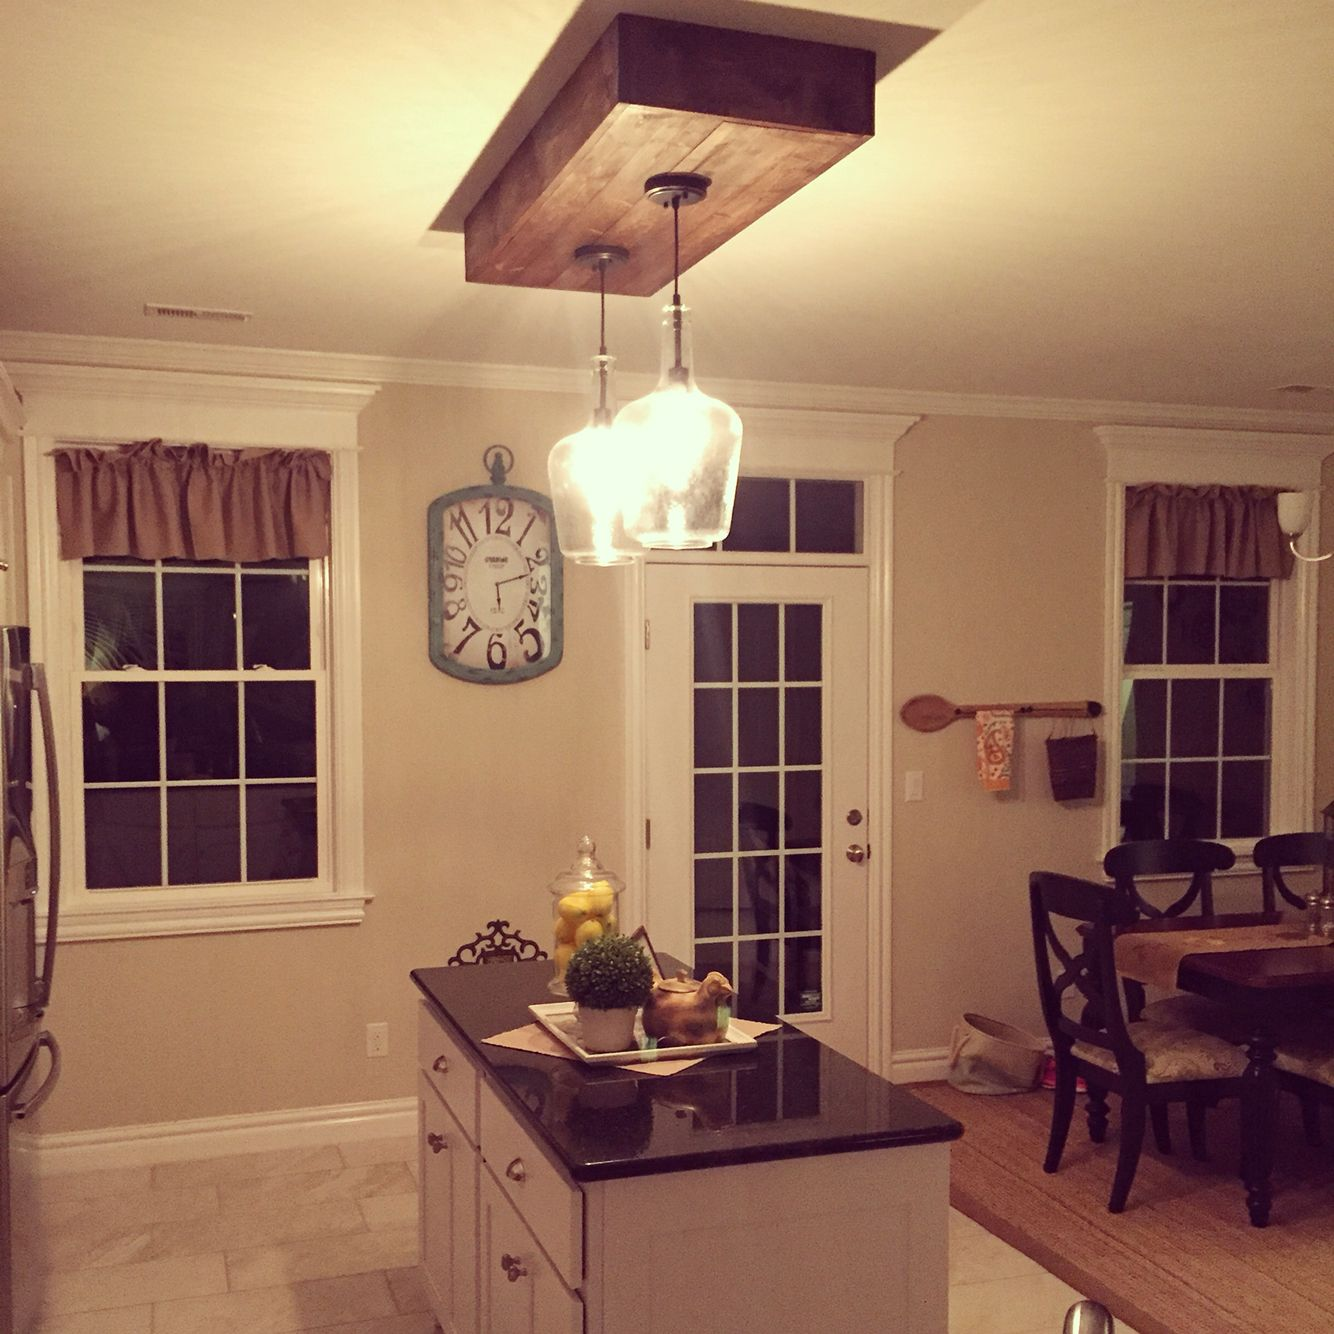 lights for kitchen island cabinets light wood replaced the fluorescent lighting